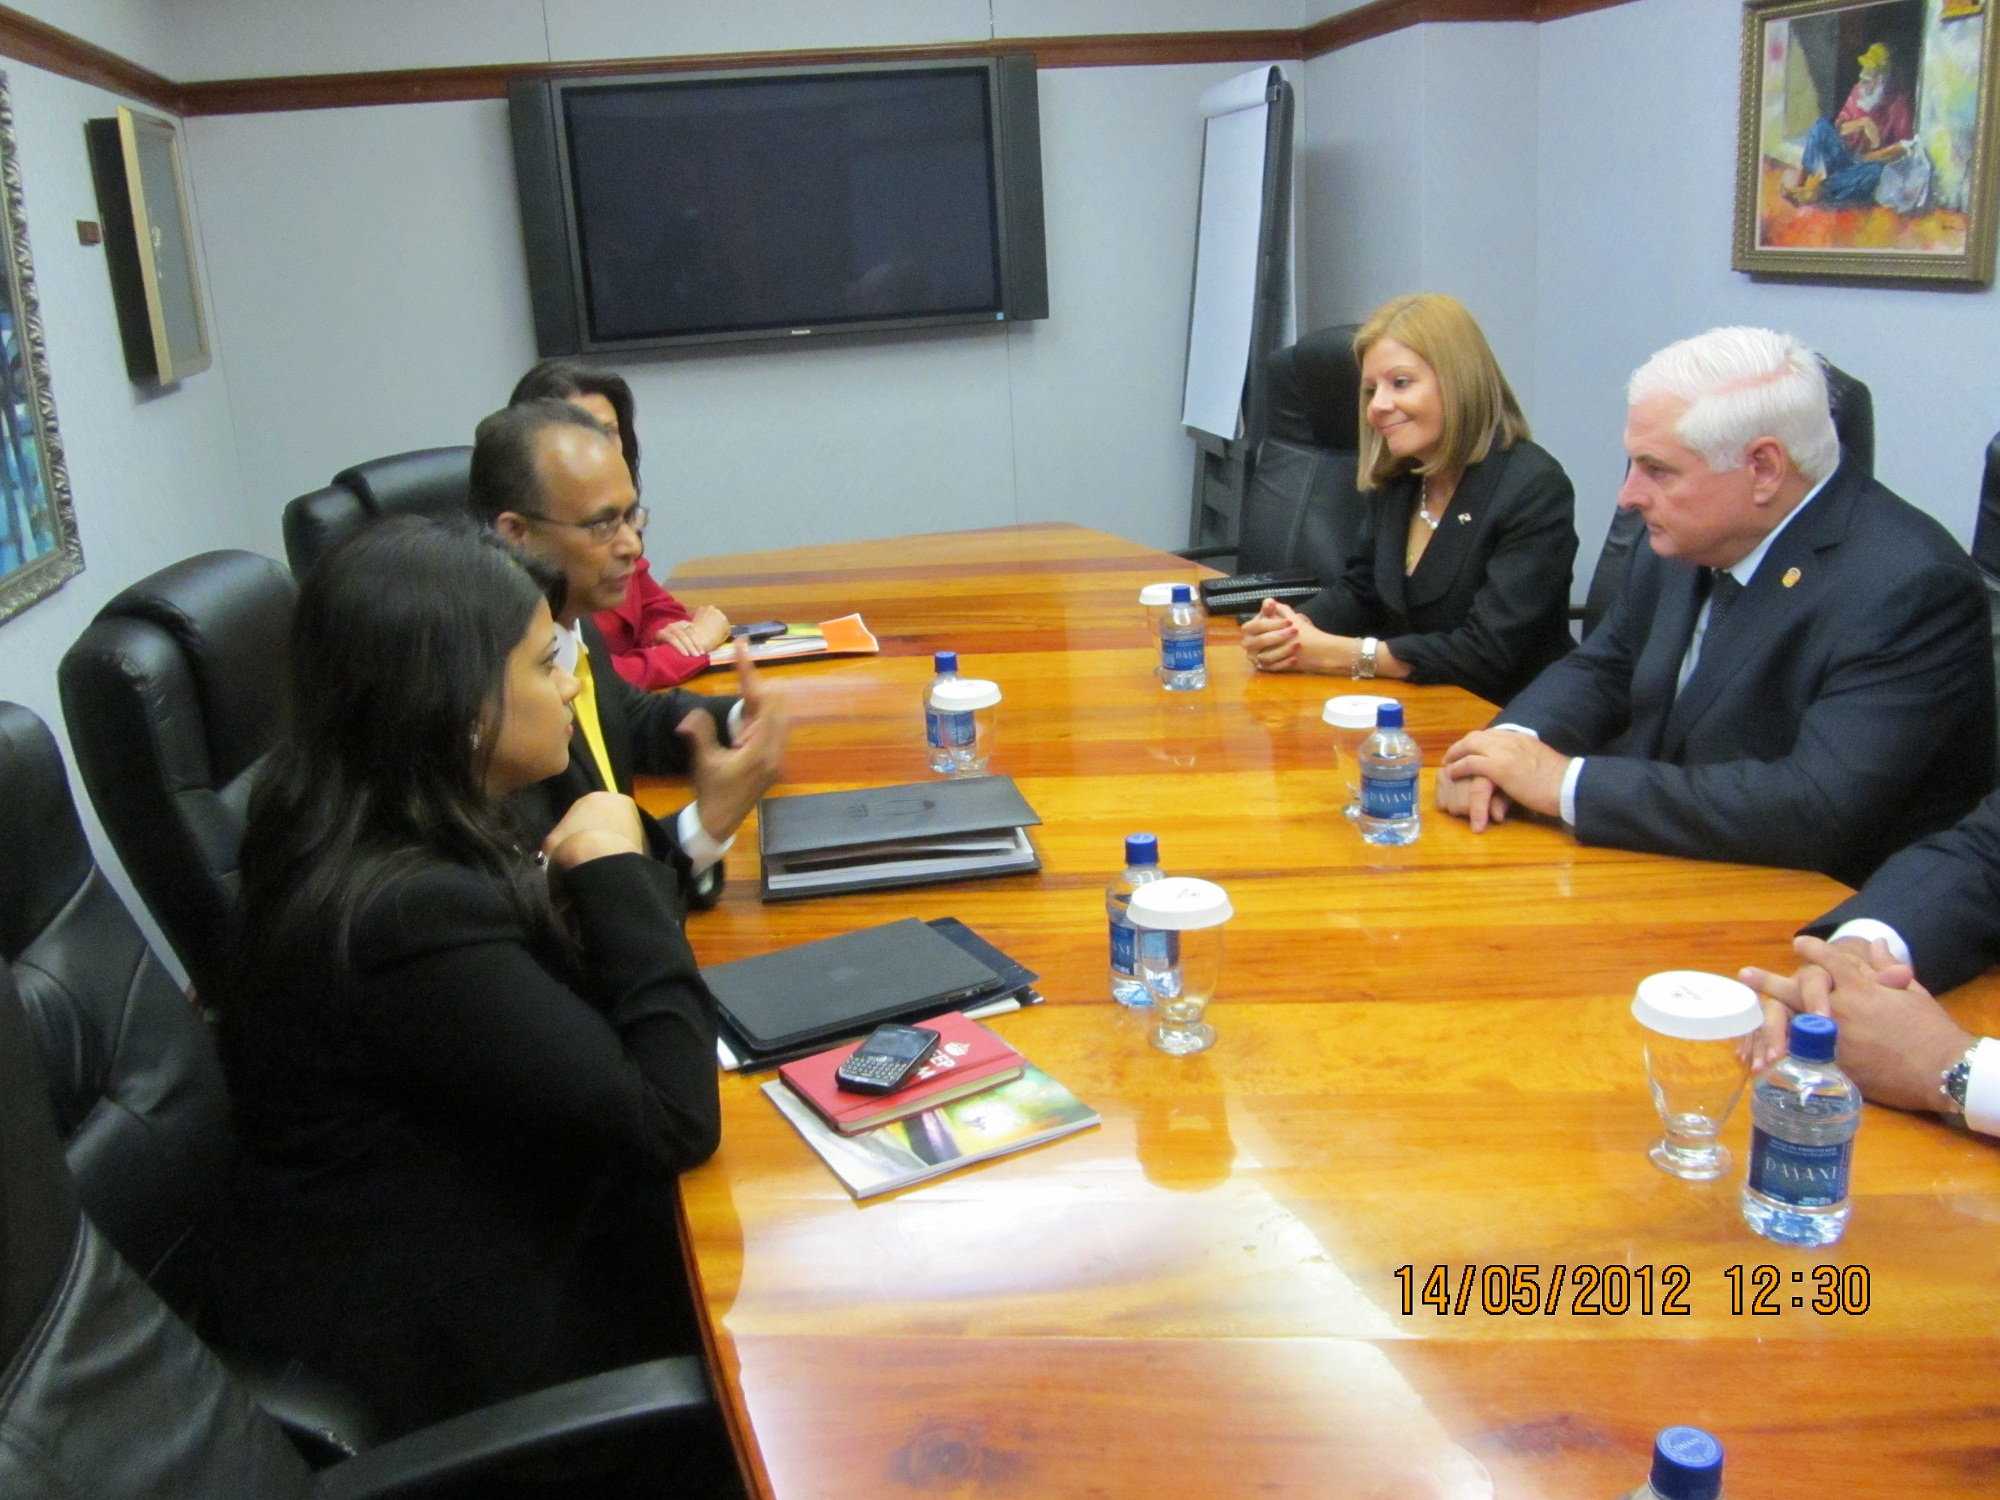 ASG Ramdin in bi-lateral discussions with President Ricardo Martinelli Berrocal of Panama on the first day of the Caribbean Investment Forum